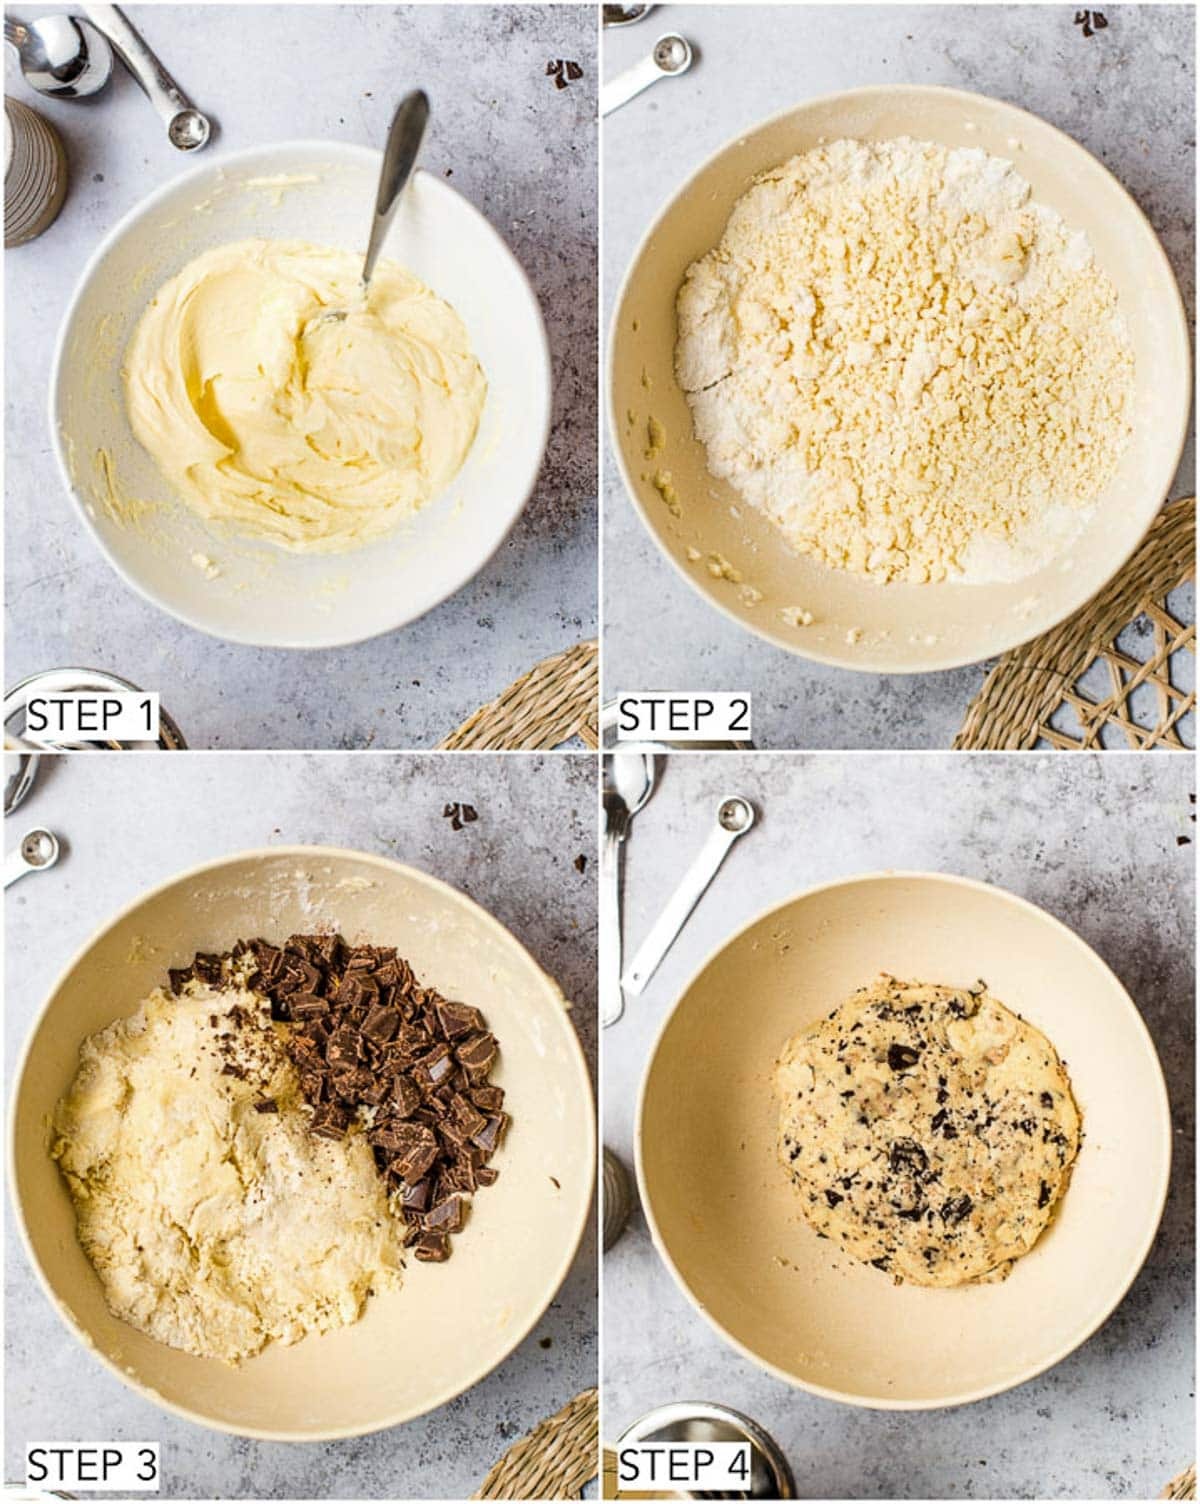 The first four steps in the process of making vegan shortbread.